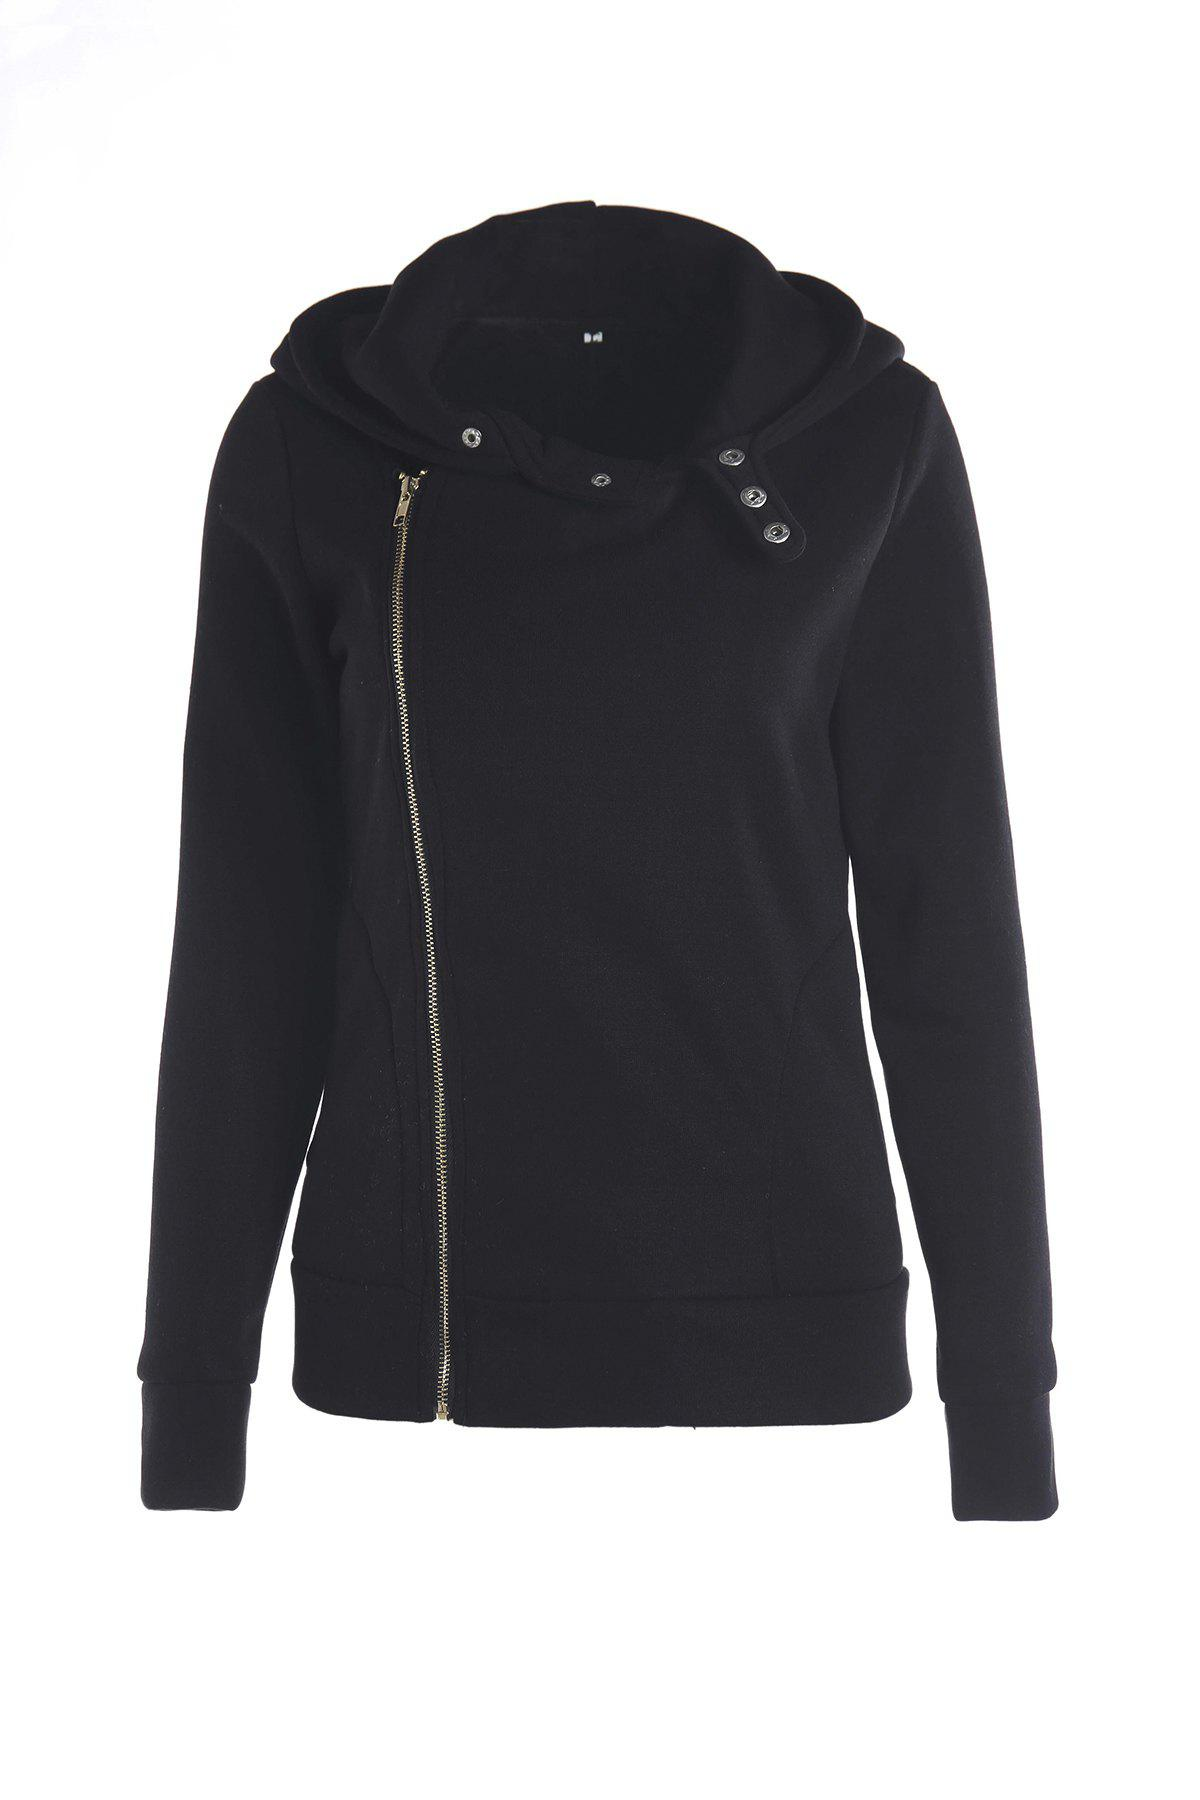 Stylish Women's Solid Color Long Sleeve Hoodie - BLACK L